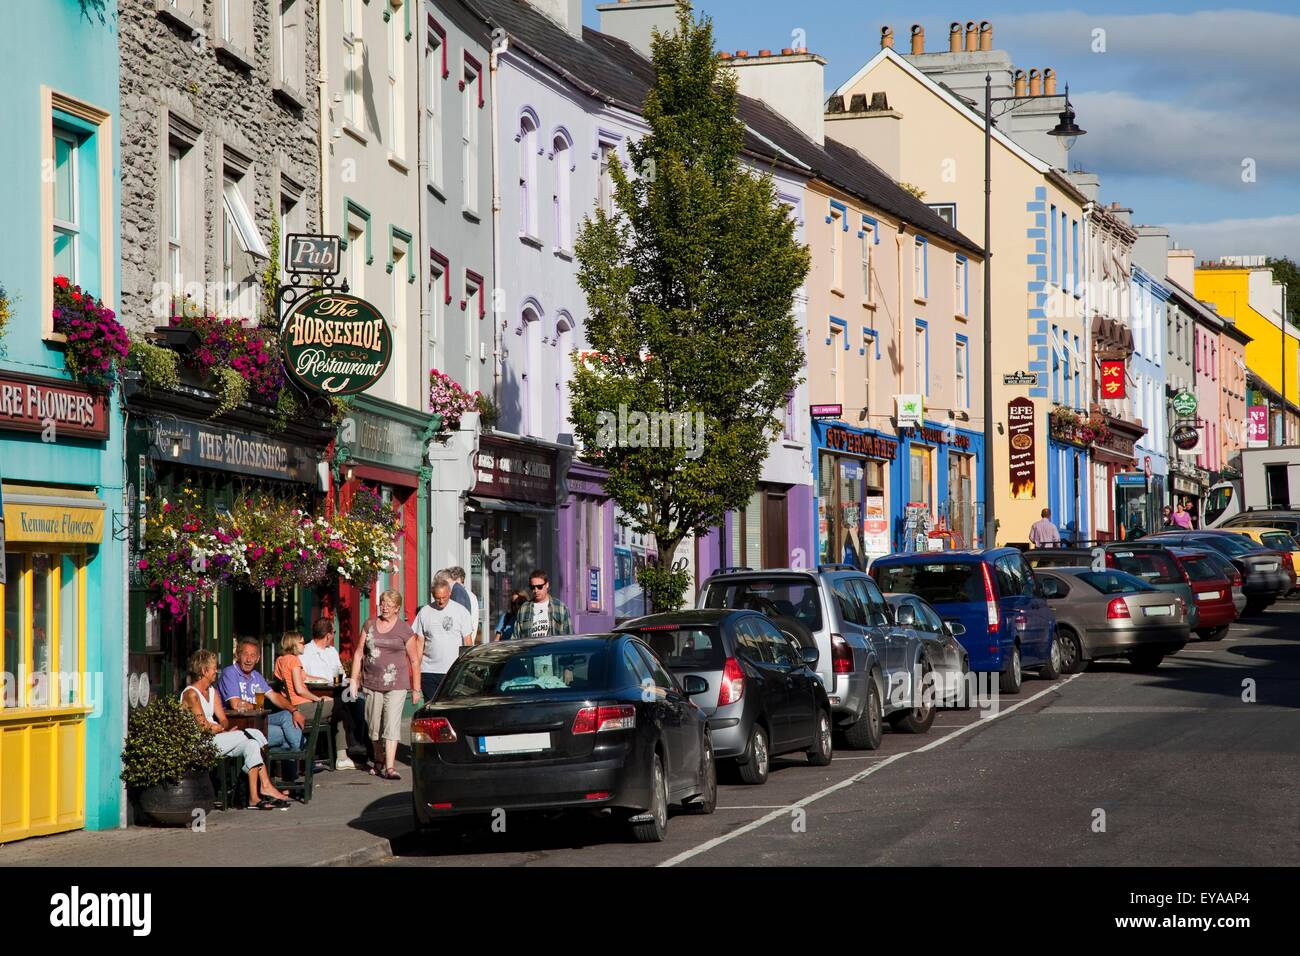 Cars Parked Along A Busy Street; Kenmare, County Kerry, Ireland - Stock Image